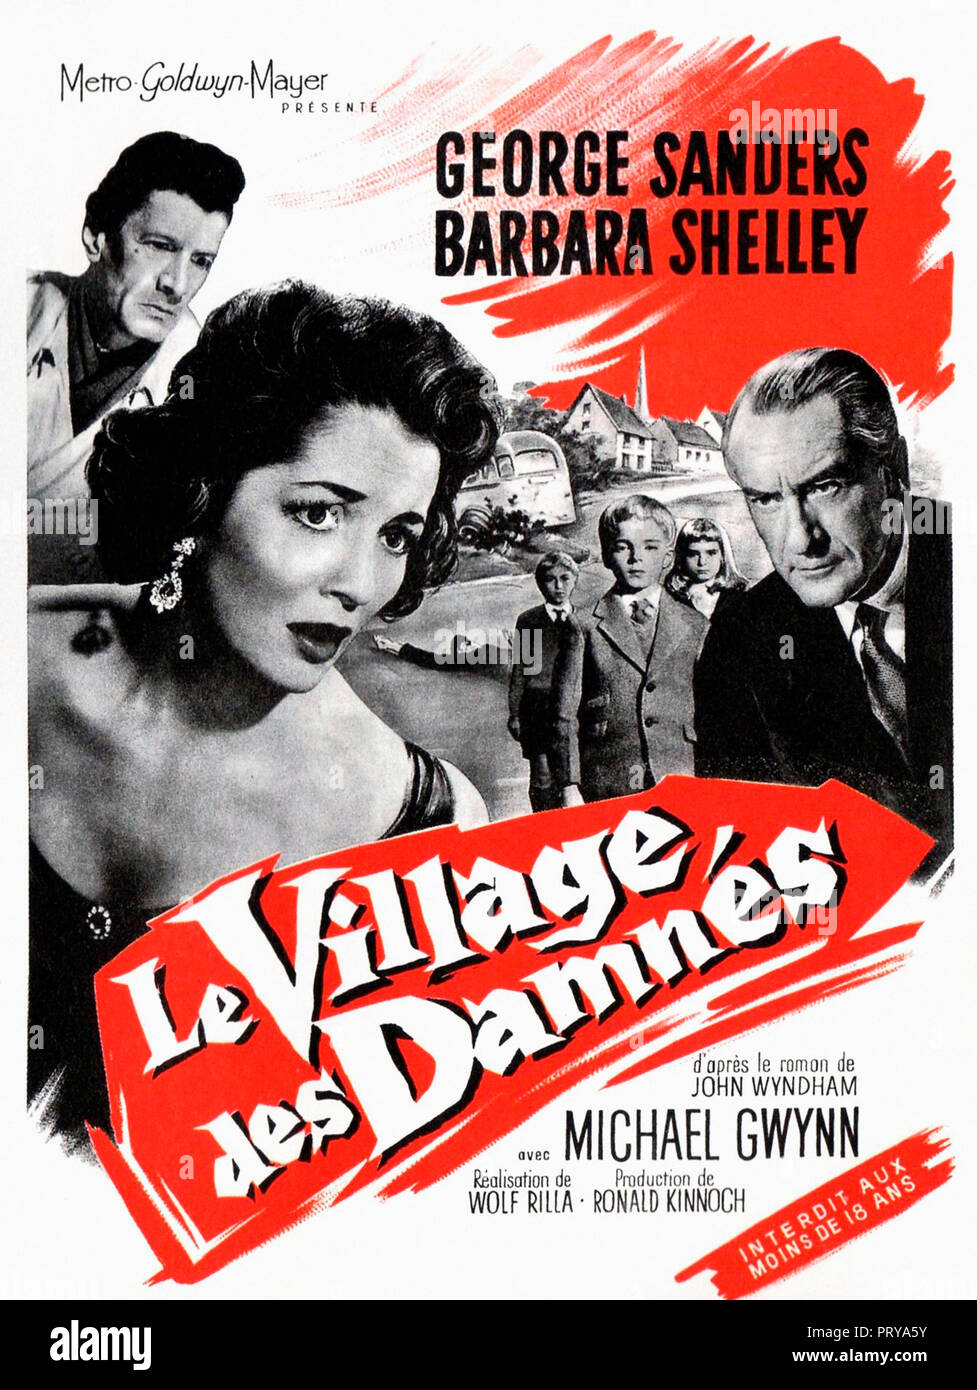 Prod DB © Metro-Goldwyn-Mayer British Studios / DR LE VILLAGE DES DAMNES VILLAGE OF THE DAMNED de Wolf Rilla 1960 GB affiche française fantastique; fa - Stock Image